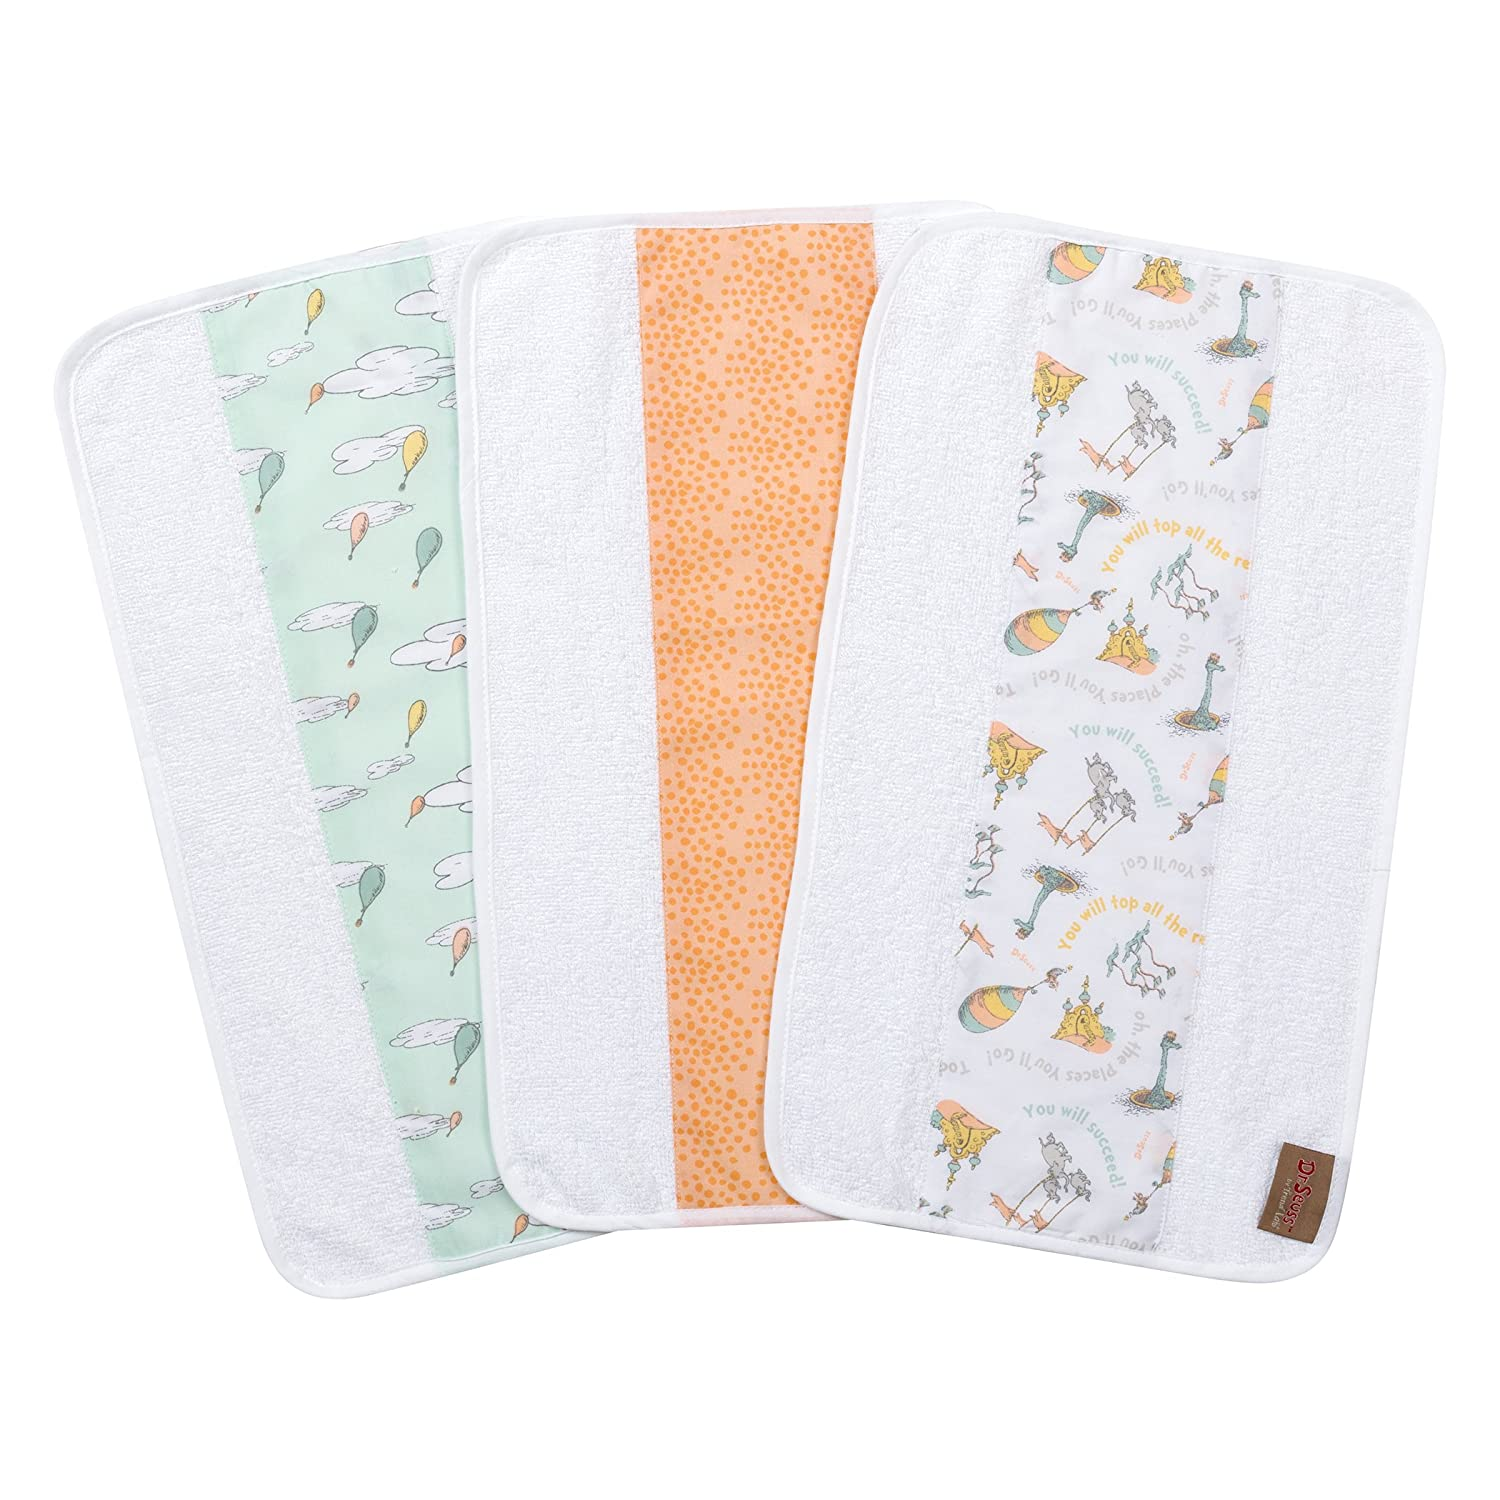 Trend Lab Dr. Seuss by Oh, The Places You'll Go! 3 Pack Jumbo Burp Cloth Set, Aqua, Orange, Yellow, Gray and White 30537